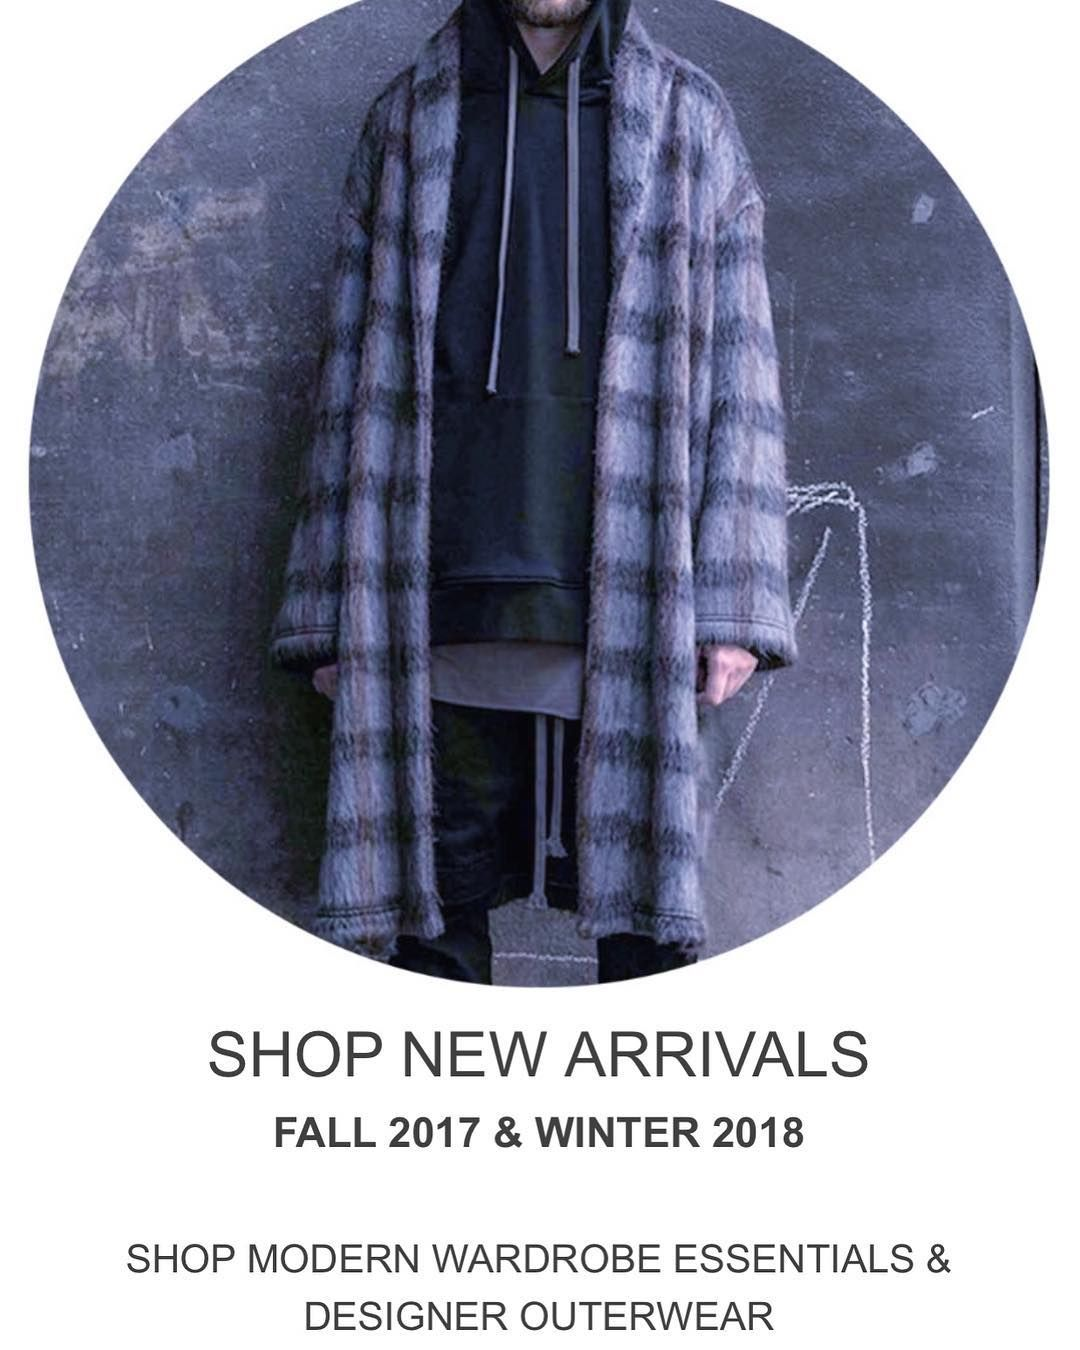 NEW CLOTHING BY AF ARTEFACT KMRii SYNGMAN CUCALA AVANT TOI & MORE. Shop @lazarosoho  Visit us in SoHo NYC Online: www.lazarosoho.com #lazarosoho #shopsoho #memswear #mensfashion #mensstyle #bestdesign #bestclothes #fallfashion #designer #art #luxury #shopnow #masterpiece #bestcollection